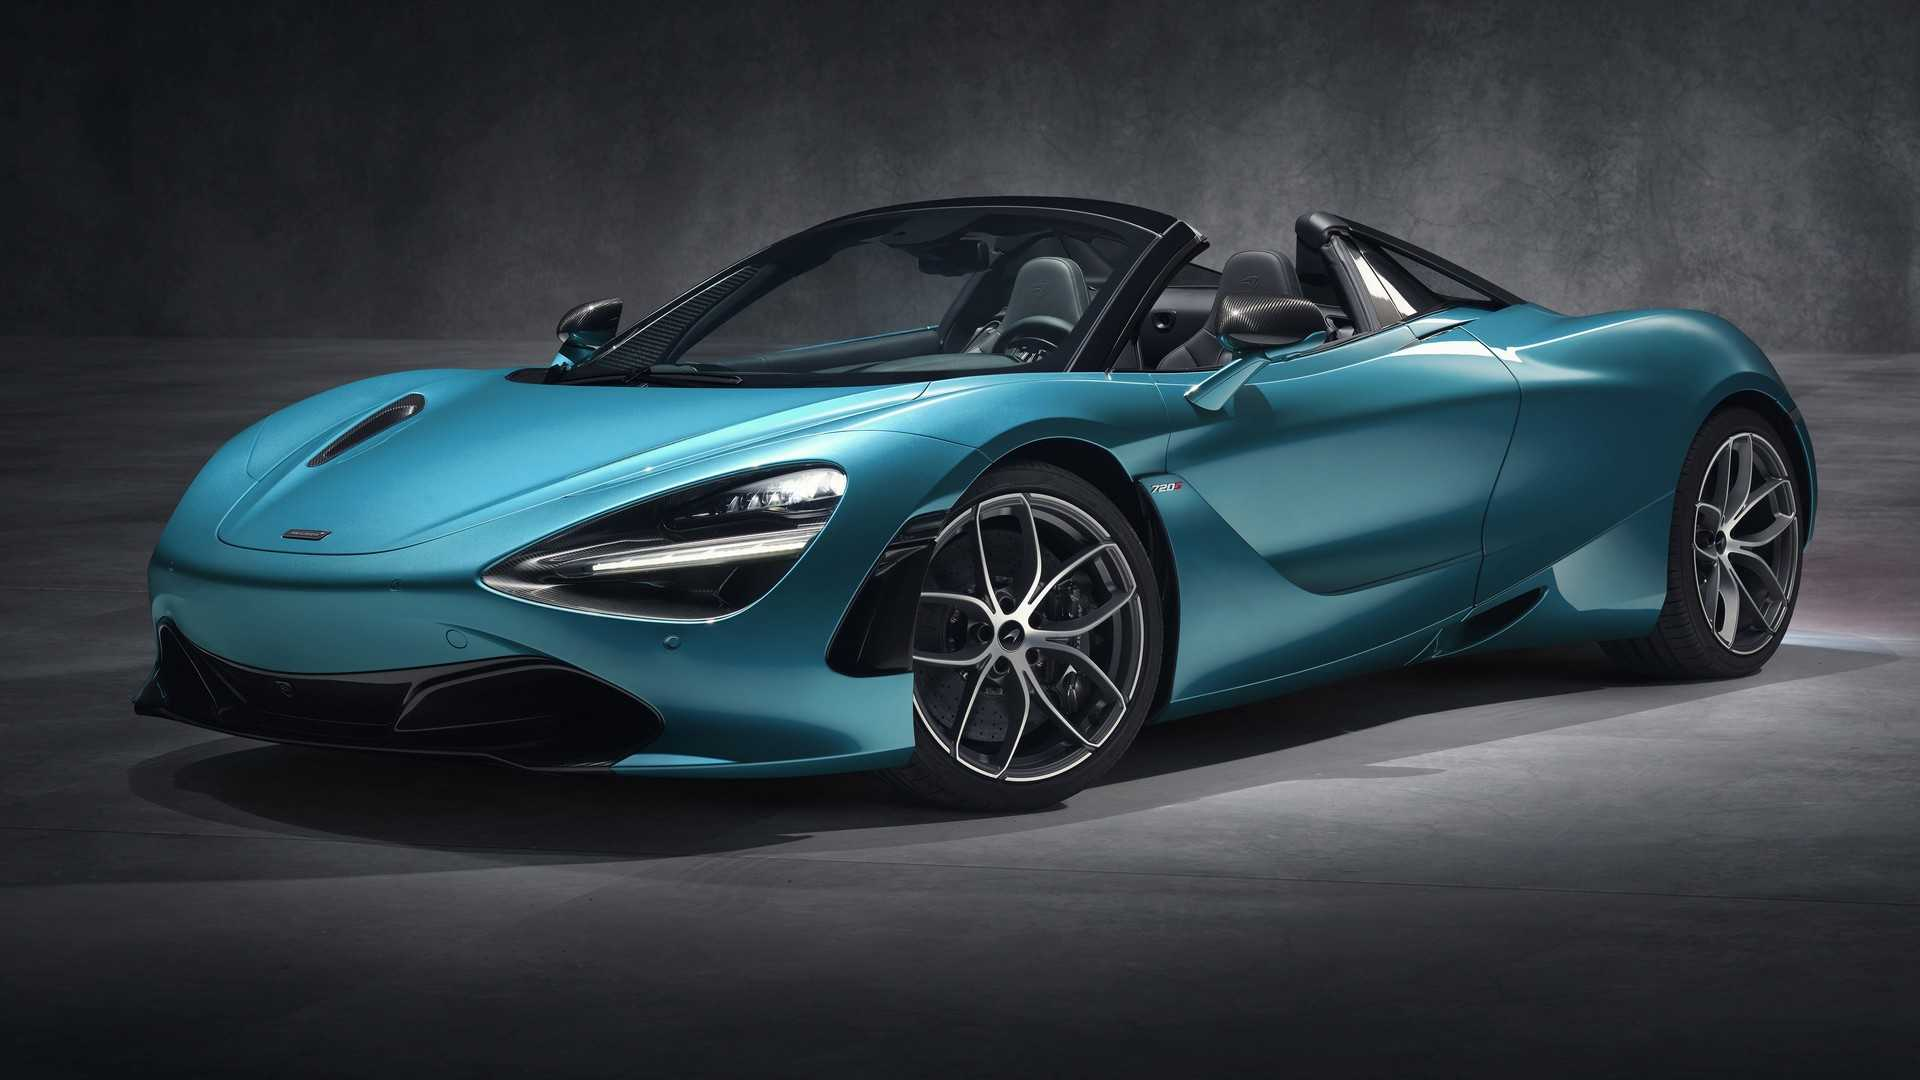 66 Gallery of 2019 Mclaren Top Speed Prices for 2019 Mclaren Top Speed